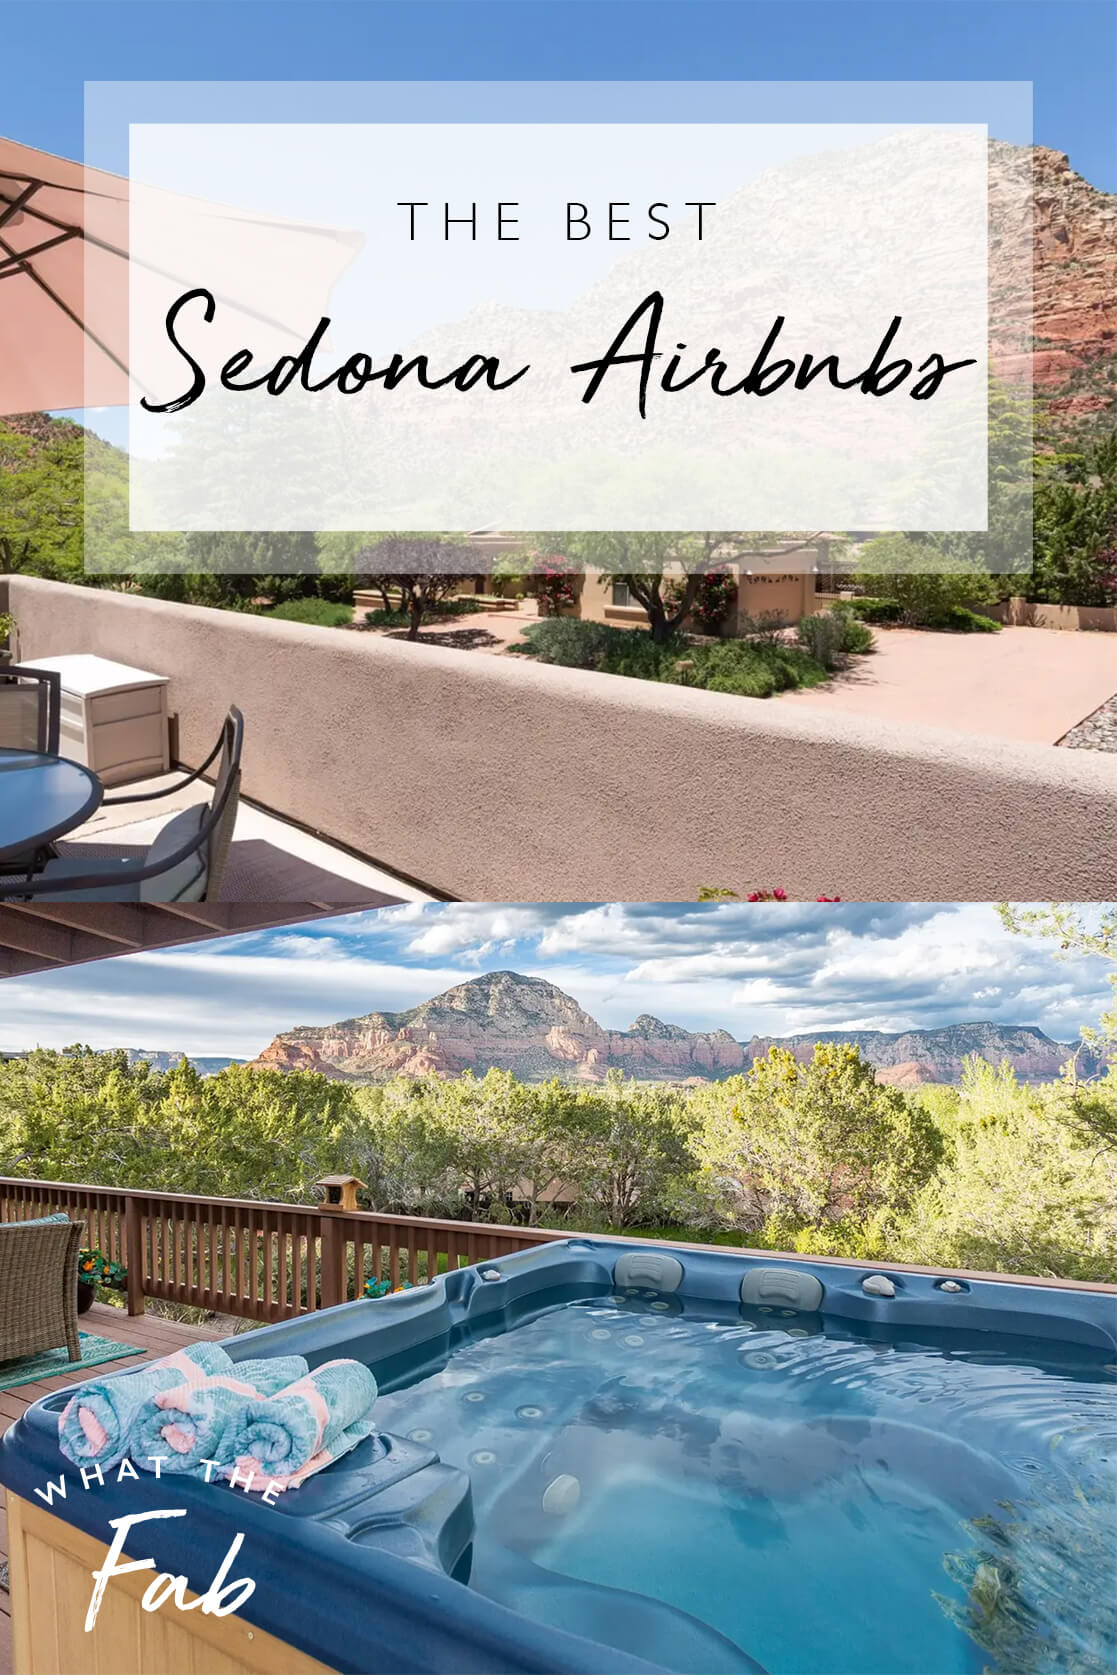 The best Sedona Airbnbs, by travel blogger What The Fab